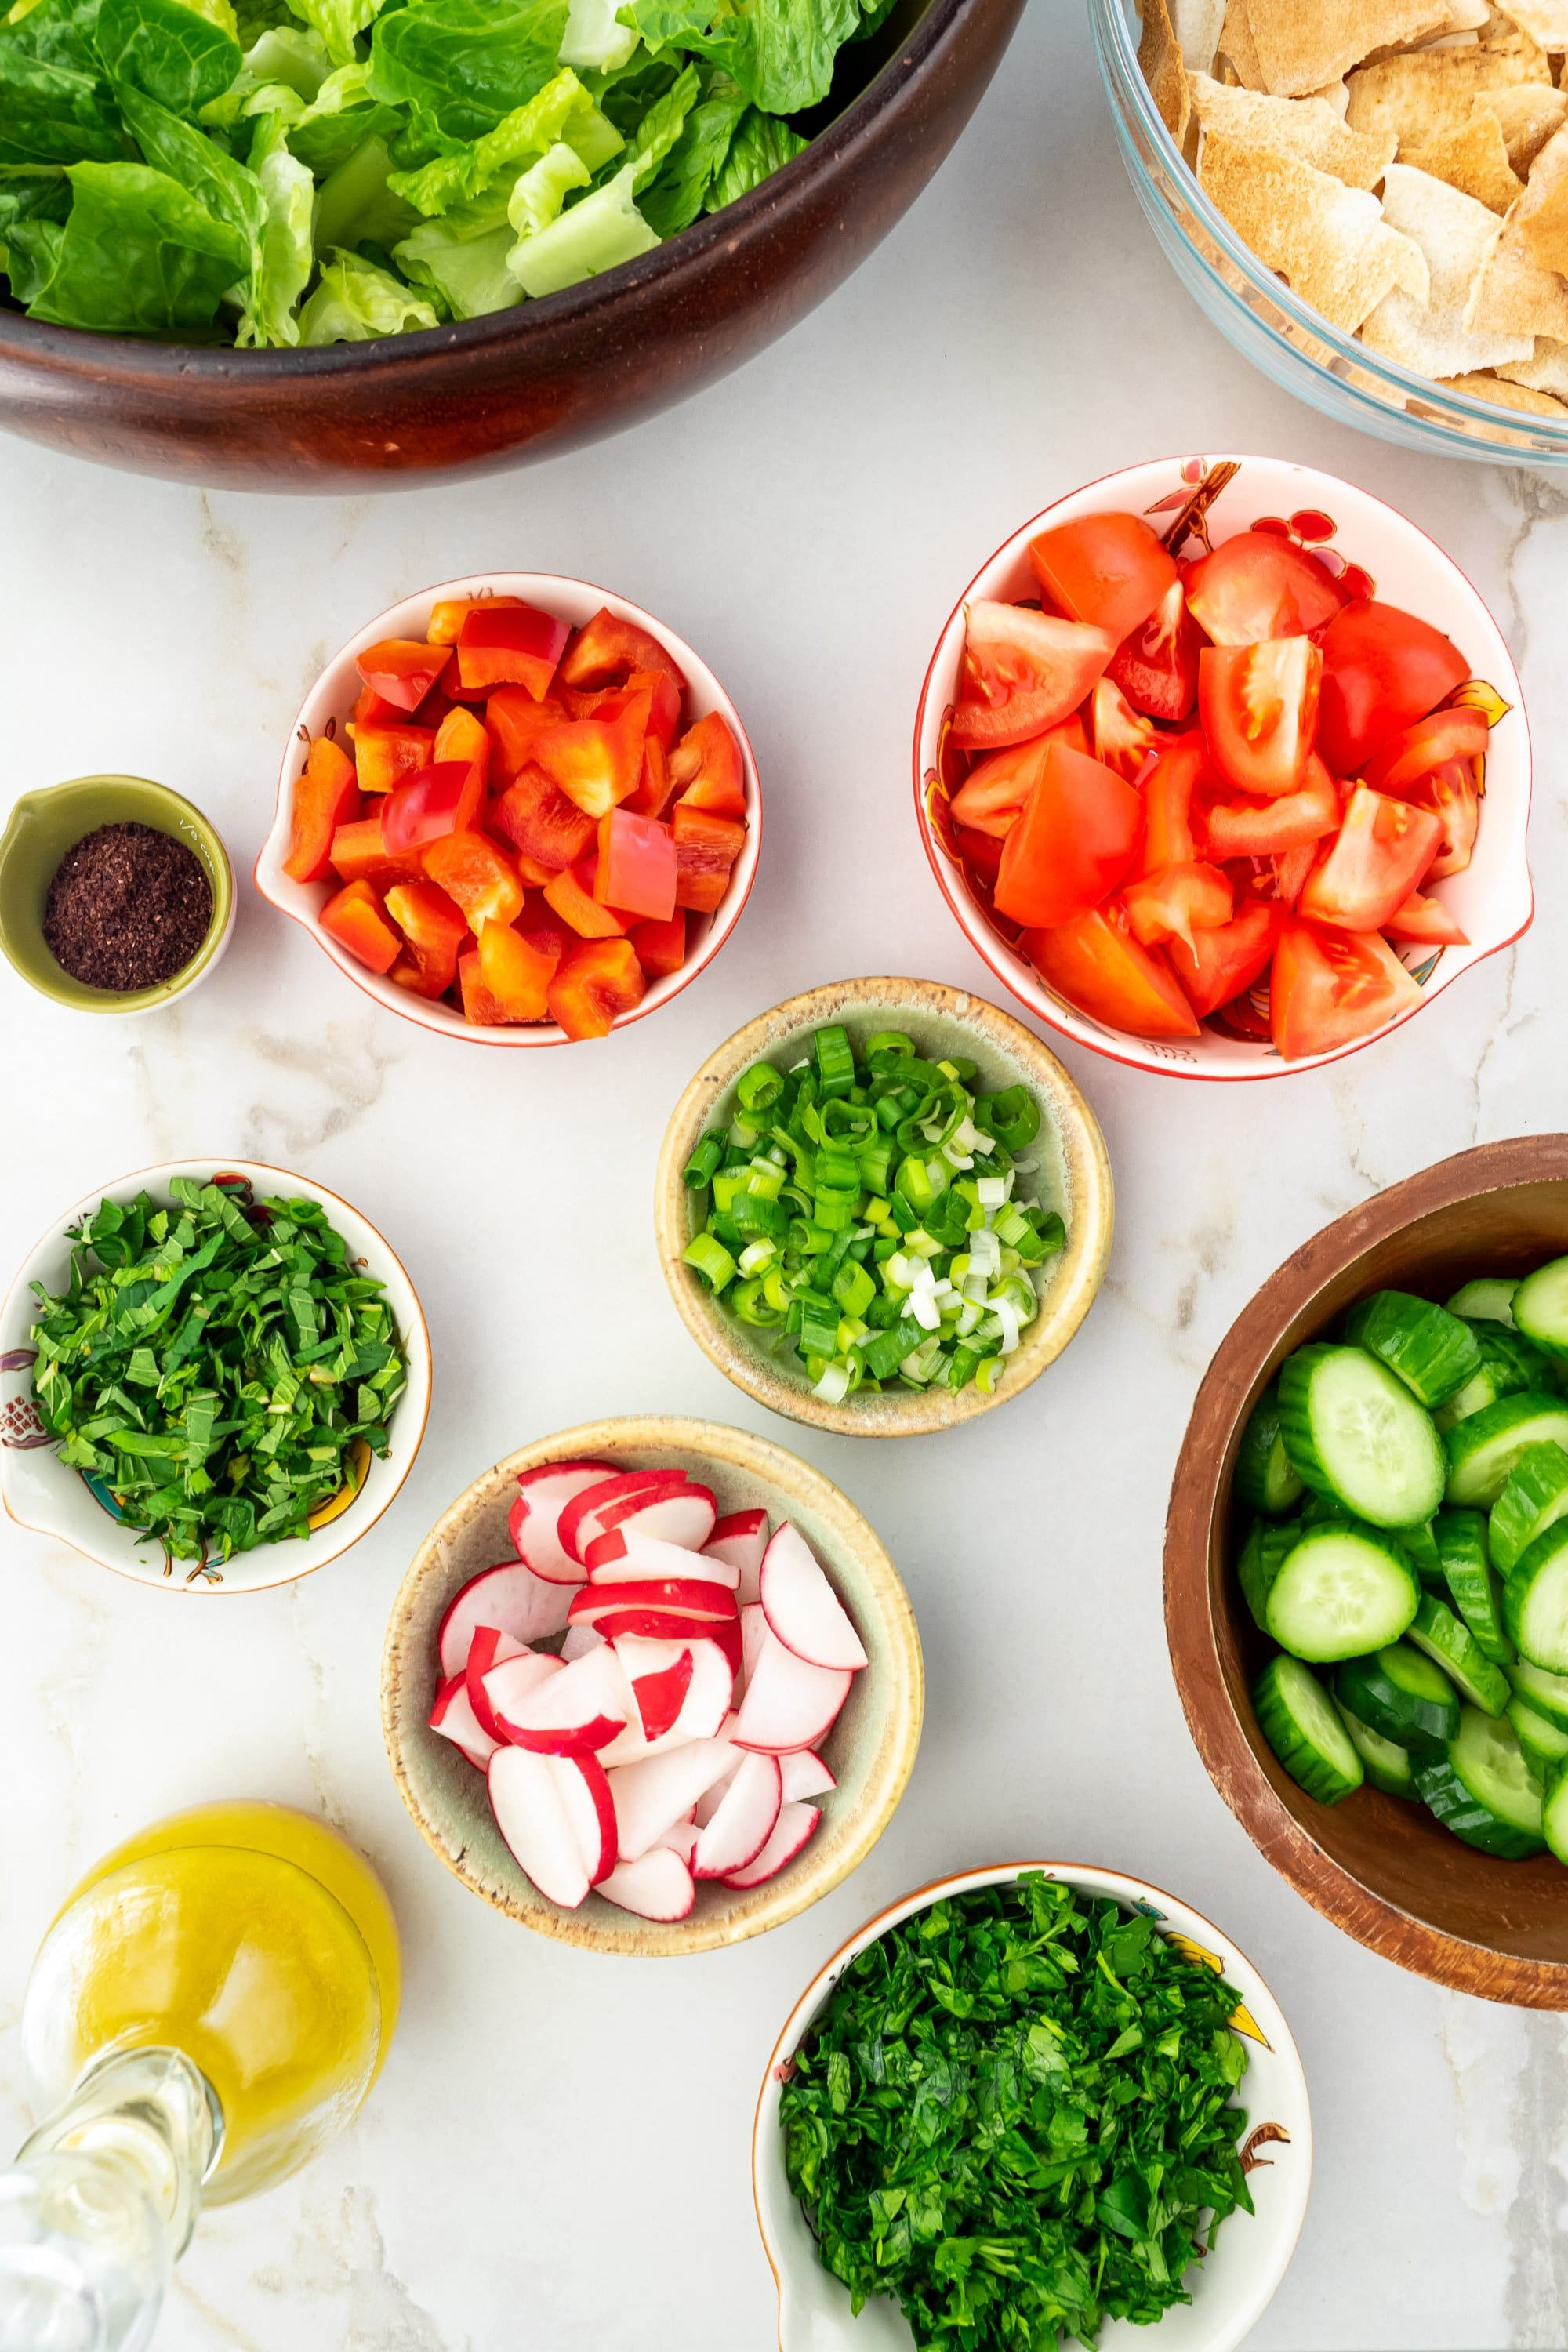 Ingredients for Fattoush salad.